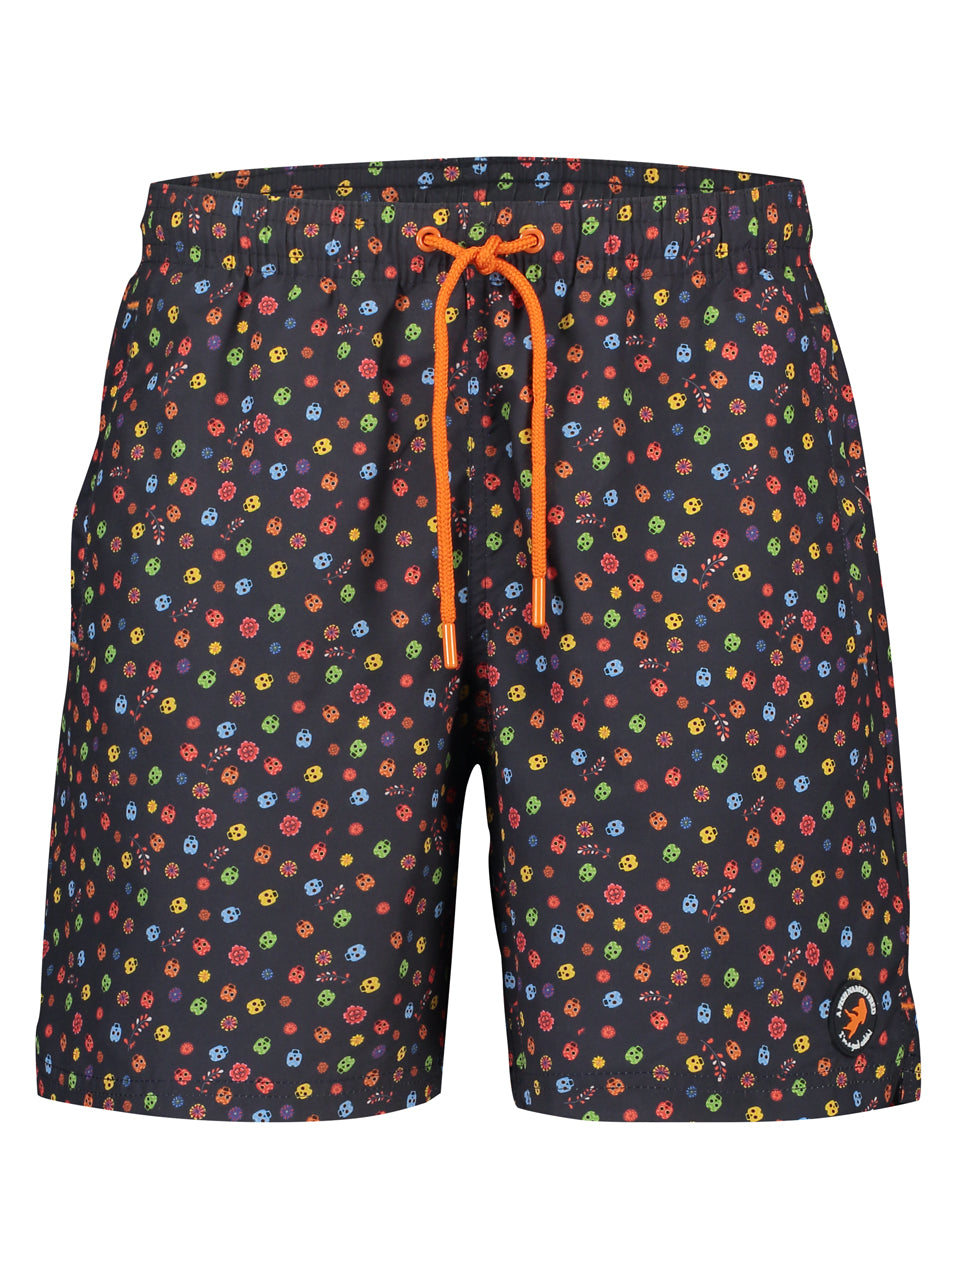 A Fish Named Fred Swimshorts - Skull Print - MitchellMcCabe